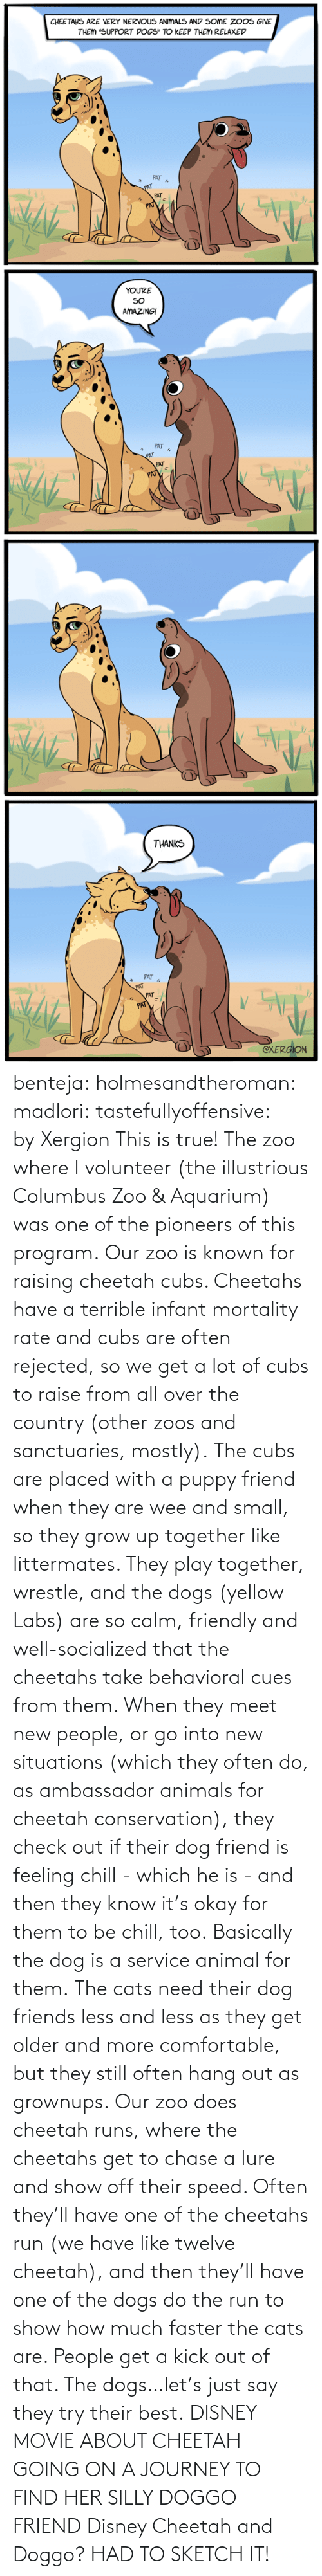 Journey: benteja:  holmesandtheroman:  madlori:  tastefullyoffensive: by Xergion This is true! The zoo where I volunteer (the illustrious Columbus Zoo & Aquarium) was one of the pioneers of this program. Our zoo is known for raising cheetah cubs. Cheetahs have a terrible infant mortality rate and cubs are often rejected, so we get a lot of cubs to raise from all over the country (other zoos and sanctuaries, mostly). The cubs are placed with a puppy friend when they are wee and small, so they grow up together like littermates. They play together, wrestle, and the dogs (yellow Labs) are so calm, friendly and well-socialized that the cheetahs take behavioral cues from them. When they meet new people, or go into new situations (which they often do, as ambassador animals for cheetah conservation), they check out if their dog friend is feeling chill - which he is - and then they know it's okay for them to be chill, too. Basically the dog is a service animal for them. The cats need their dog friends less and less as they get older and more comfortable, but they still often hang out as grownups. Our zoo does cheetah runs, where the cheetahs get to chase a lure and show off their speed. Often they'll have one of the cheetahs run (we have like twelve cheetah), and then they'll have one of the dogs do the run to show how much faster the cats are. People get a kick out of that. The dogs…let's just say they try their best.   DISNEY MOVIE ABOUT CHEETAH GOING ON A JOURNEY TO FIND HER SILLY DOGGO FRIEND  Disney Cheetah and Doggo? HAD TO SKETCH IT!